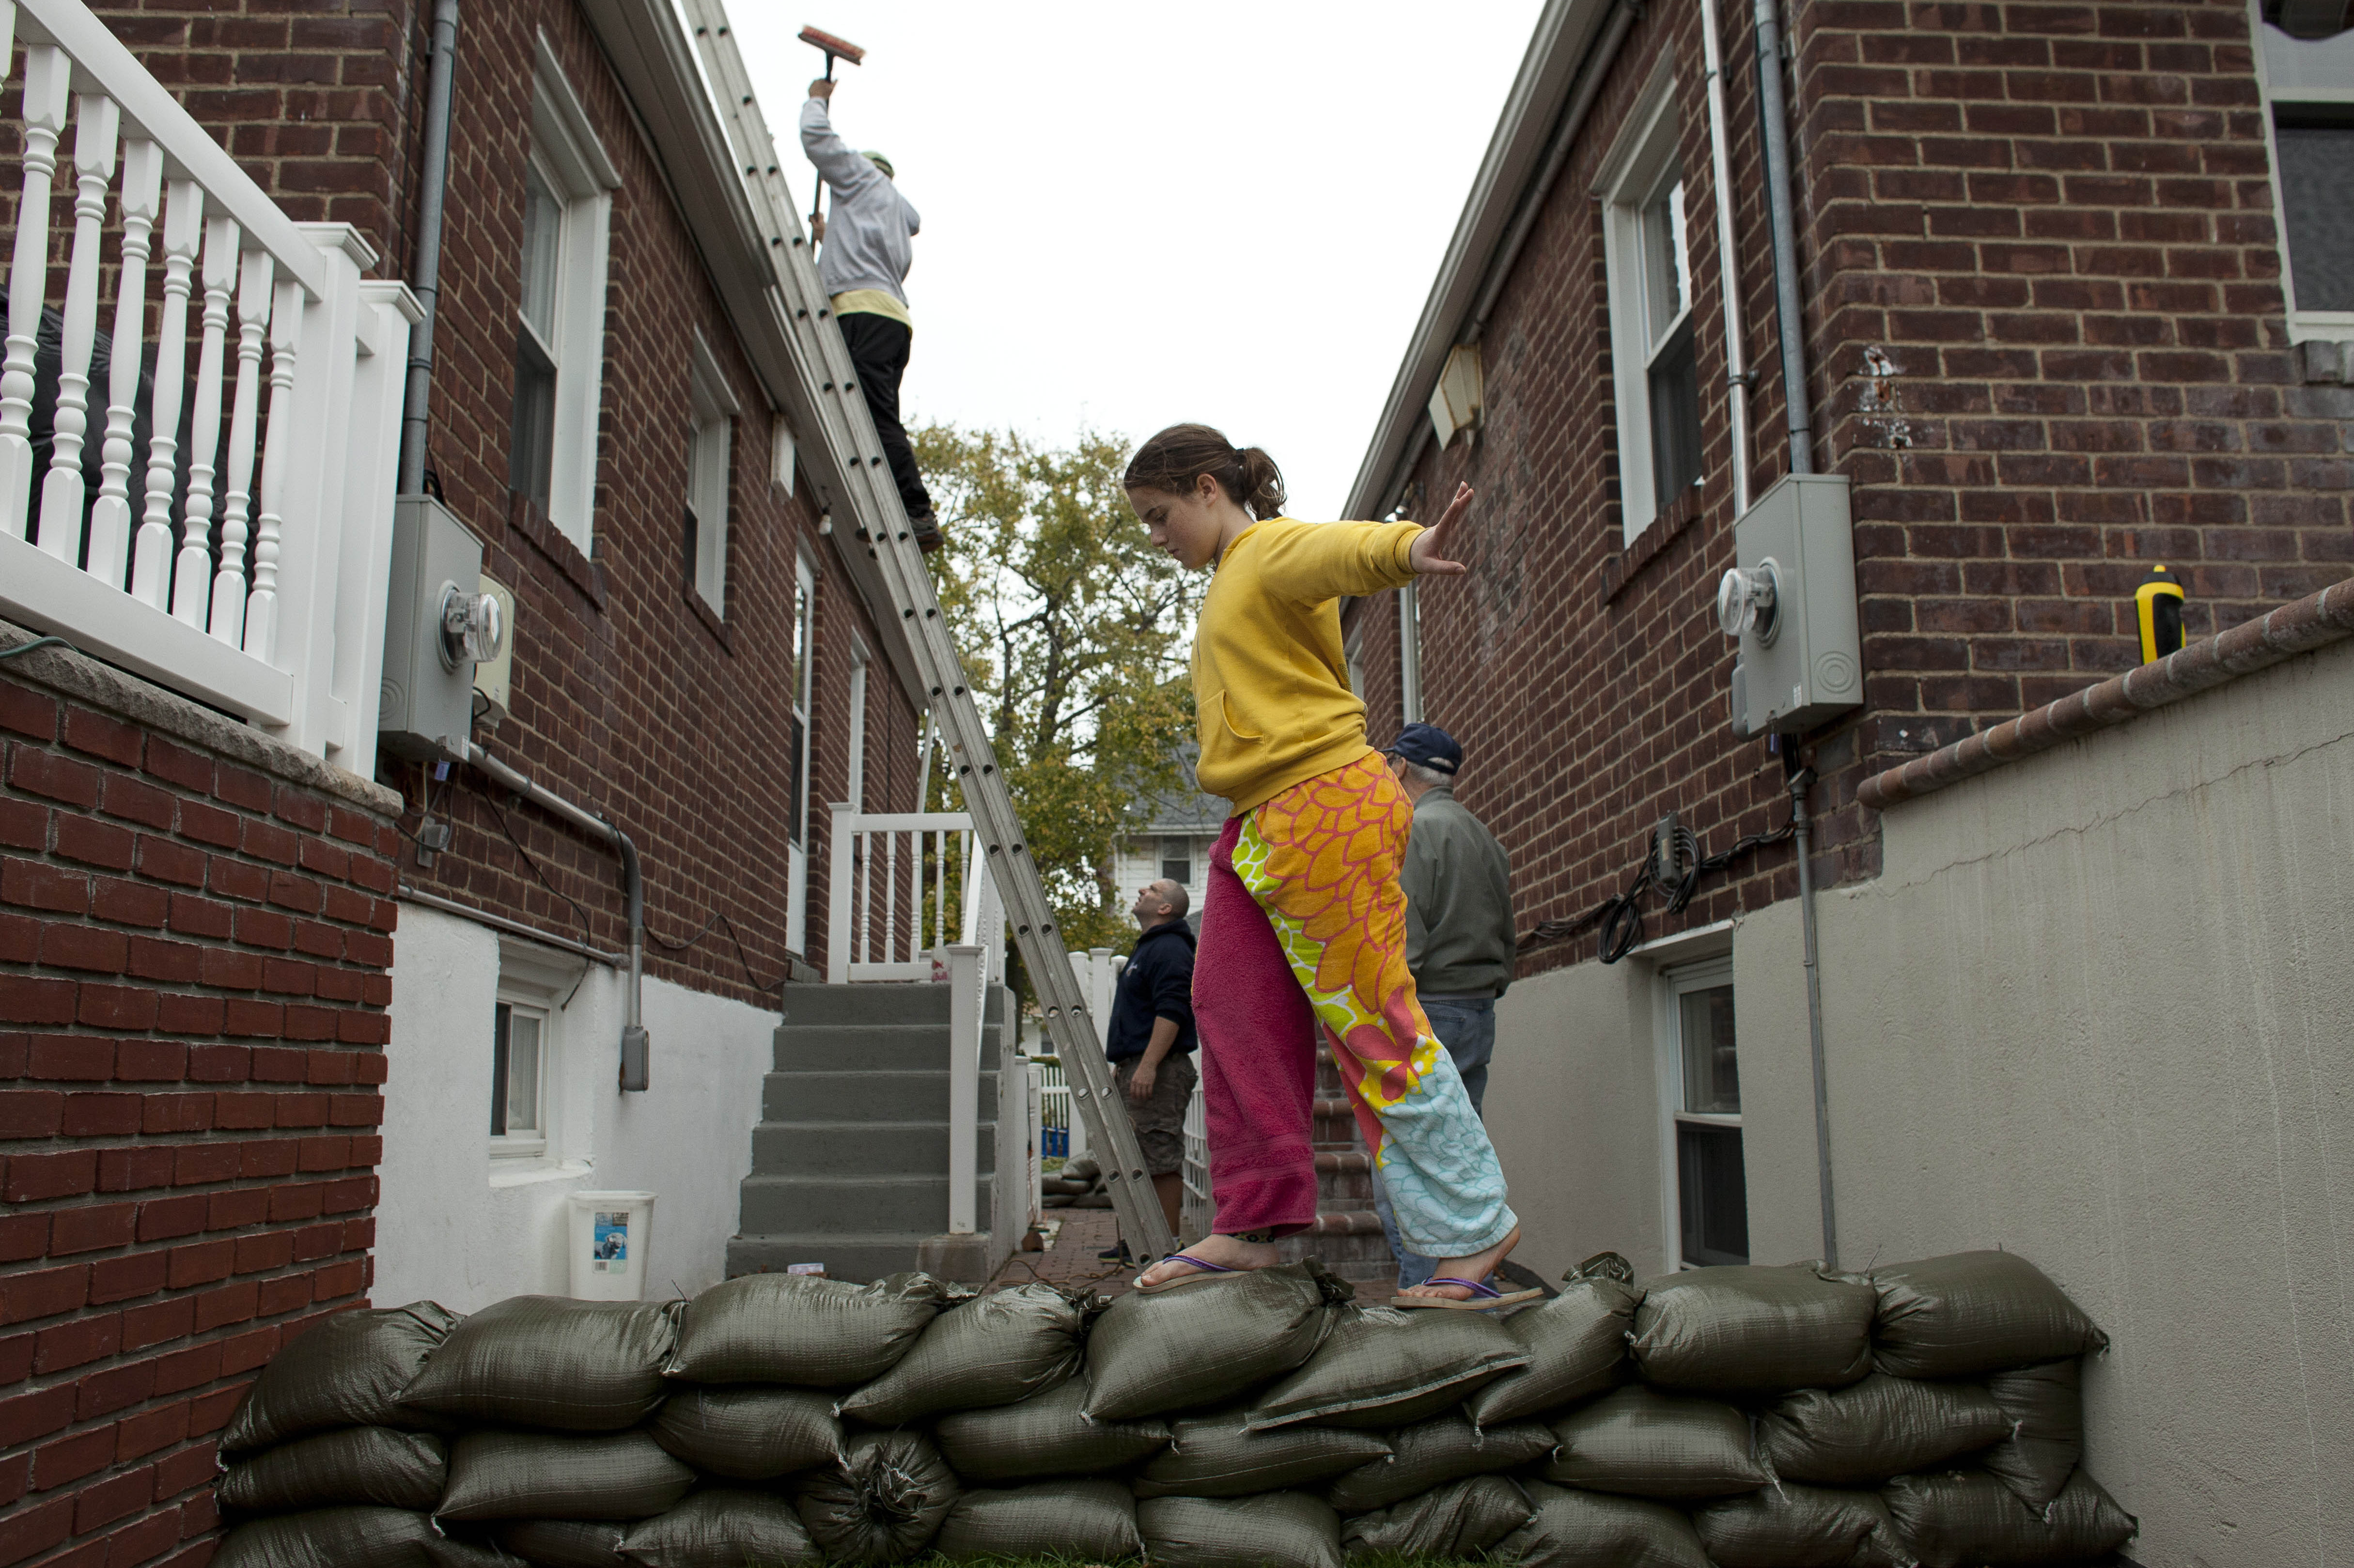 Bridget Donnelly walks on a sandbag wall outside her home in the Rockaway Beach neighborhood of Queens in New York City. Mayor Michael Bloomberg announced a mandatory evacuation of the city's low-lying coastal areas.